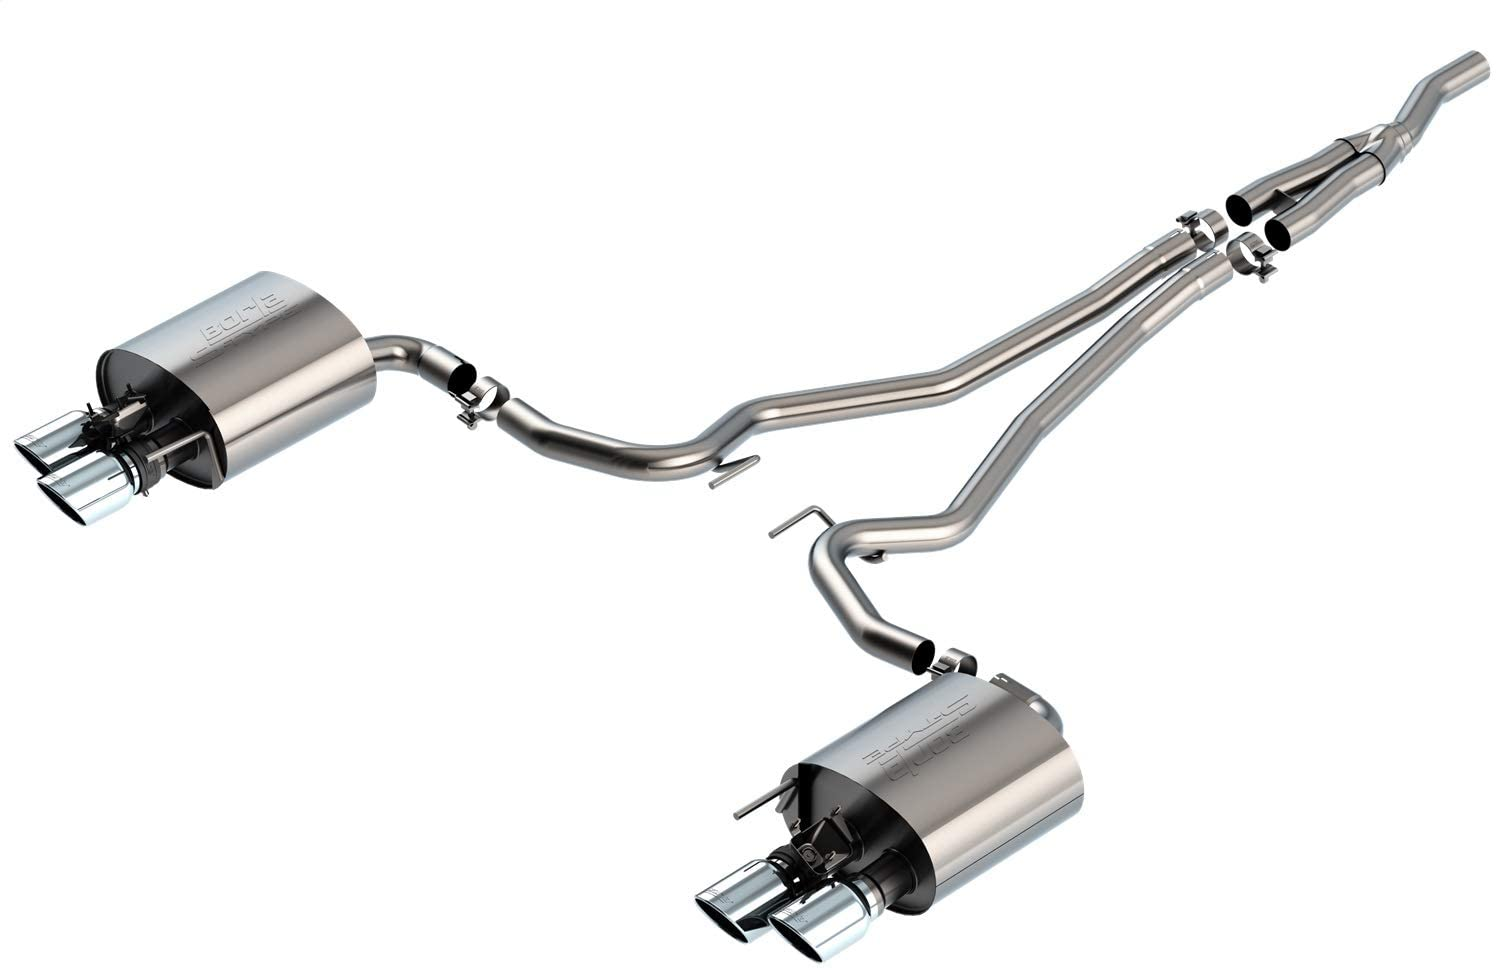 Borla 140827 S-Type Cat-Back Exhaust System 2.500 in. 4 in. Tip Size Dual Round Rolled Angle-Cut Long Dual Split Rear Exit S-Type Cat-Back Exhaust System